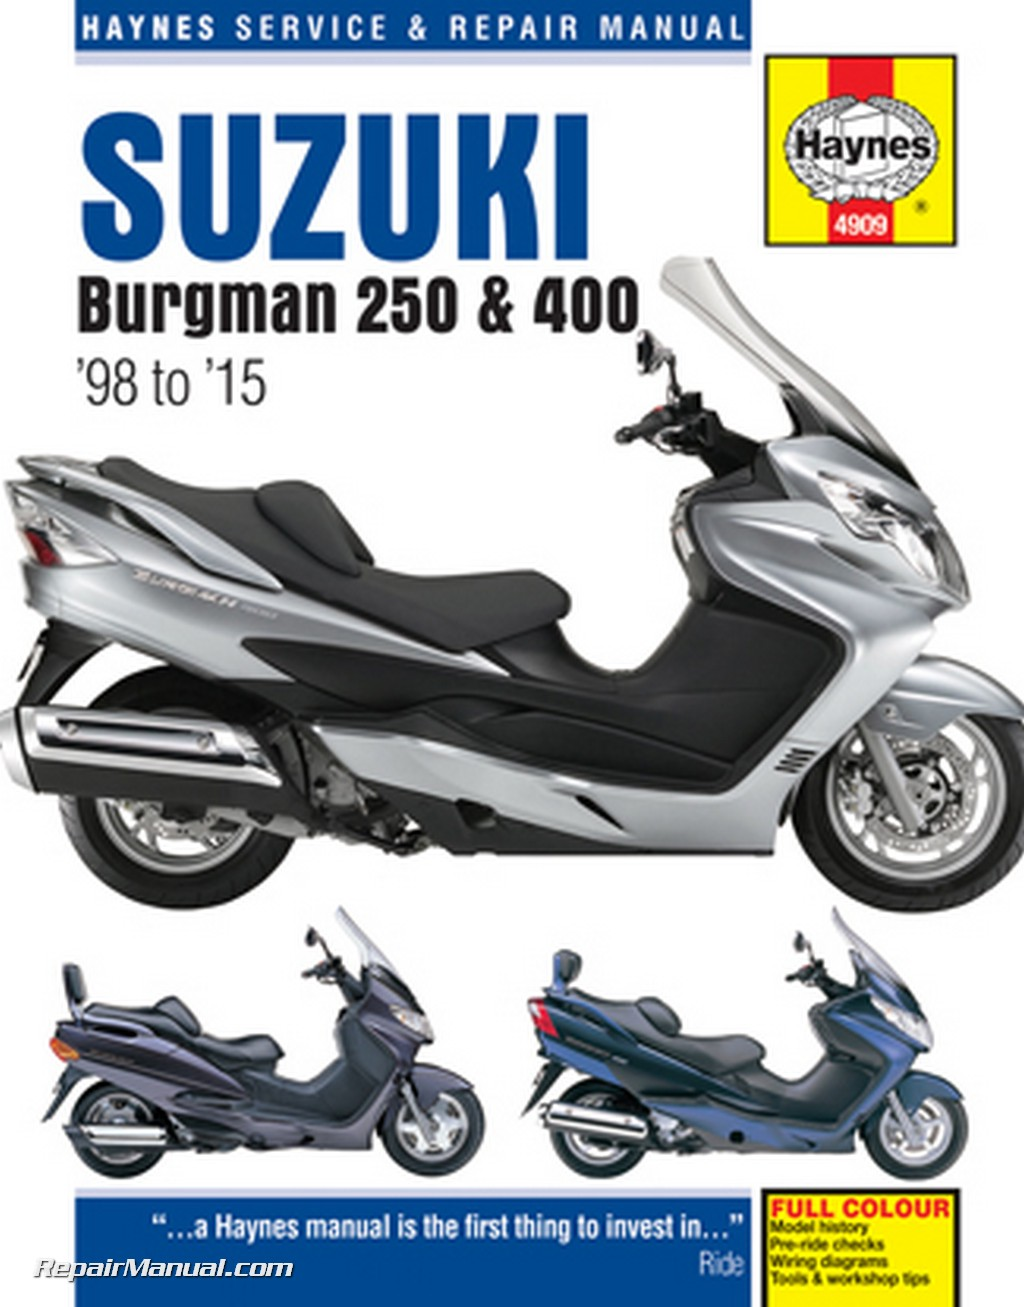 Suzuki Burgman Wiring Diagram | Wiring Diagrams on